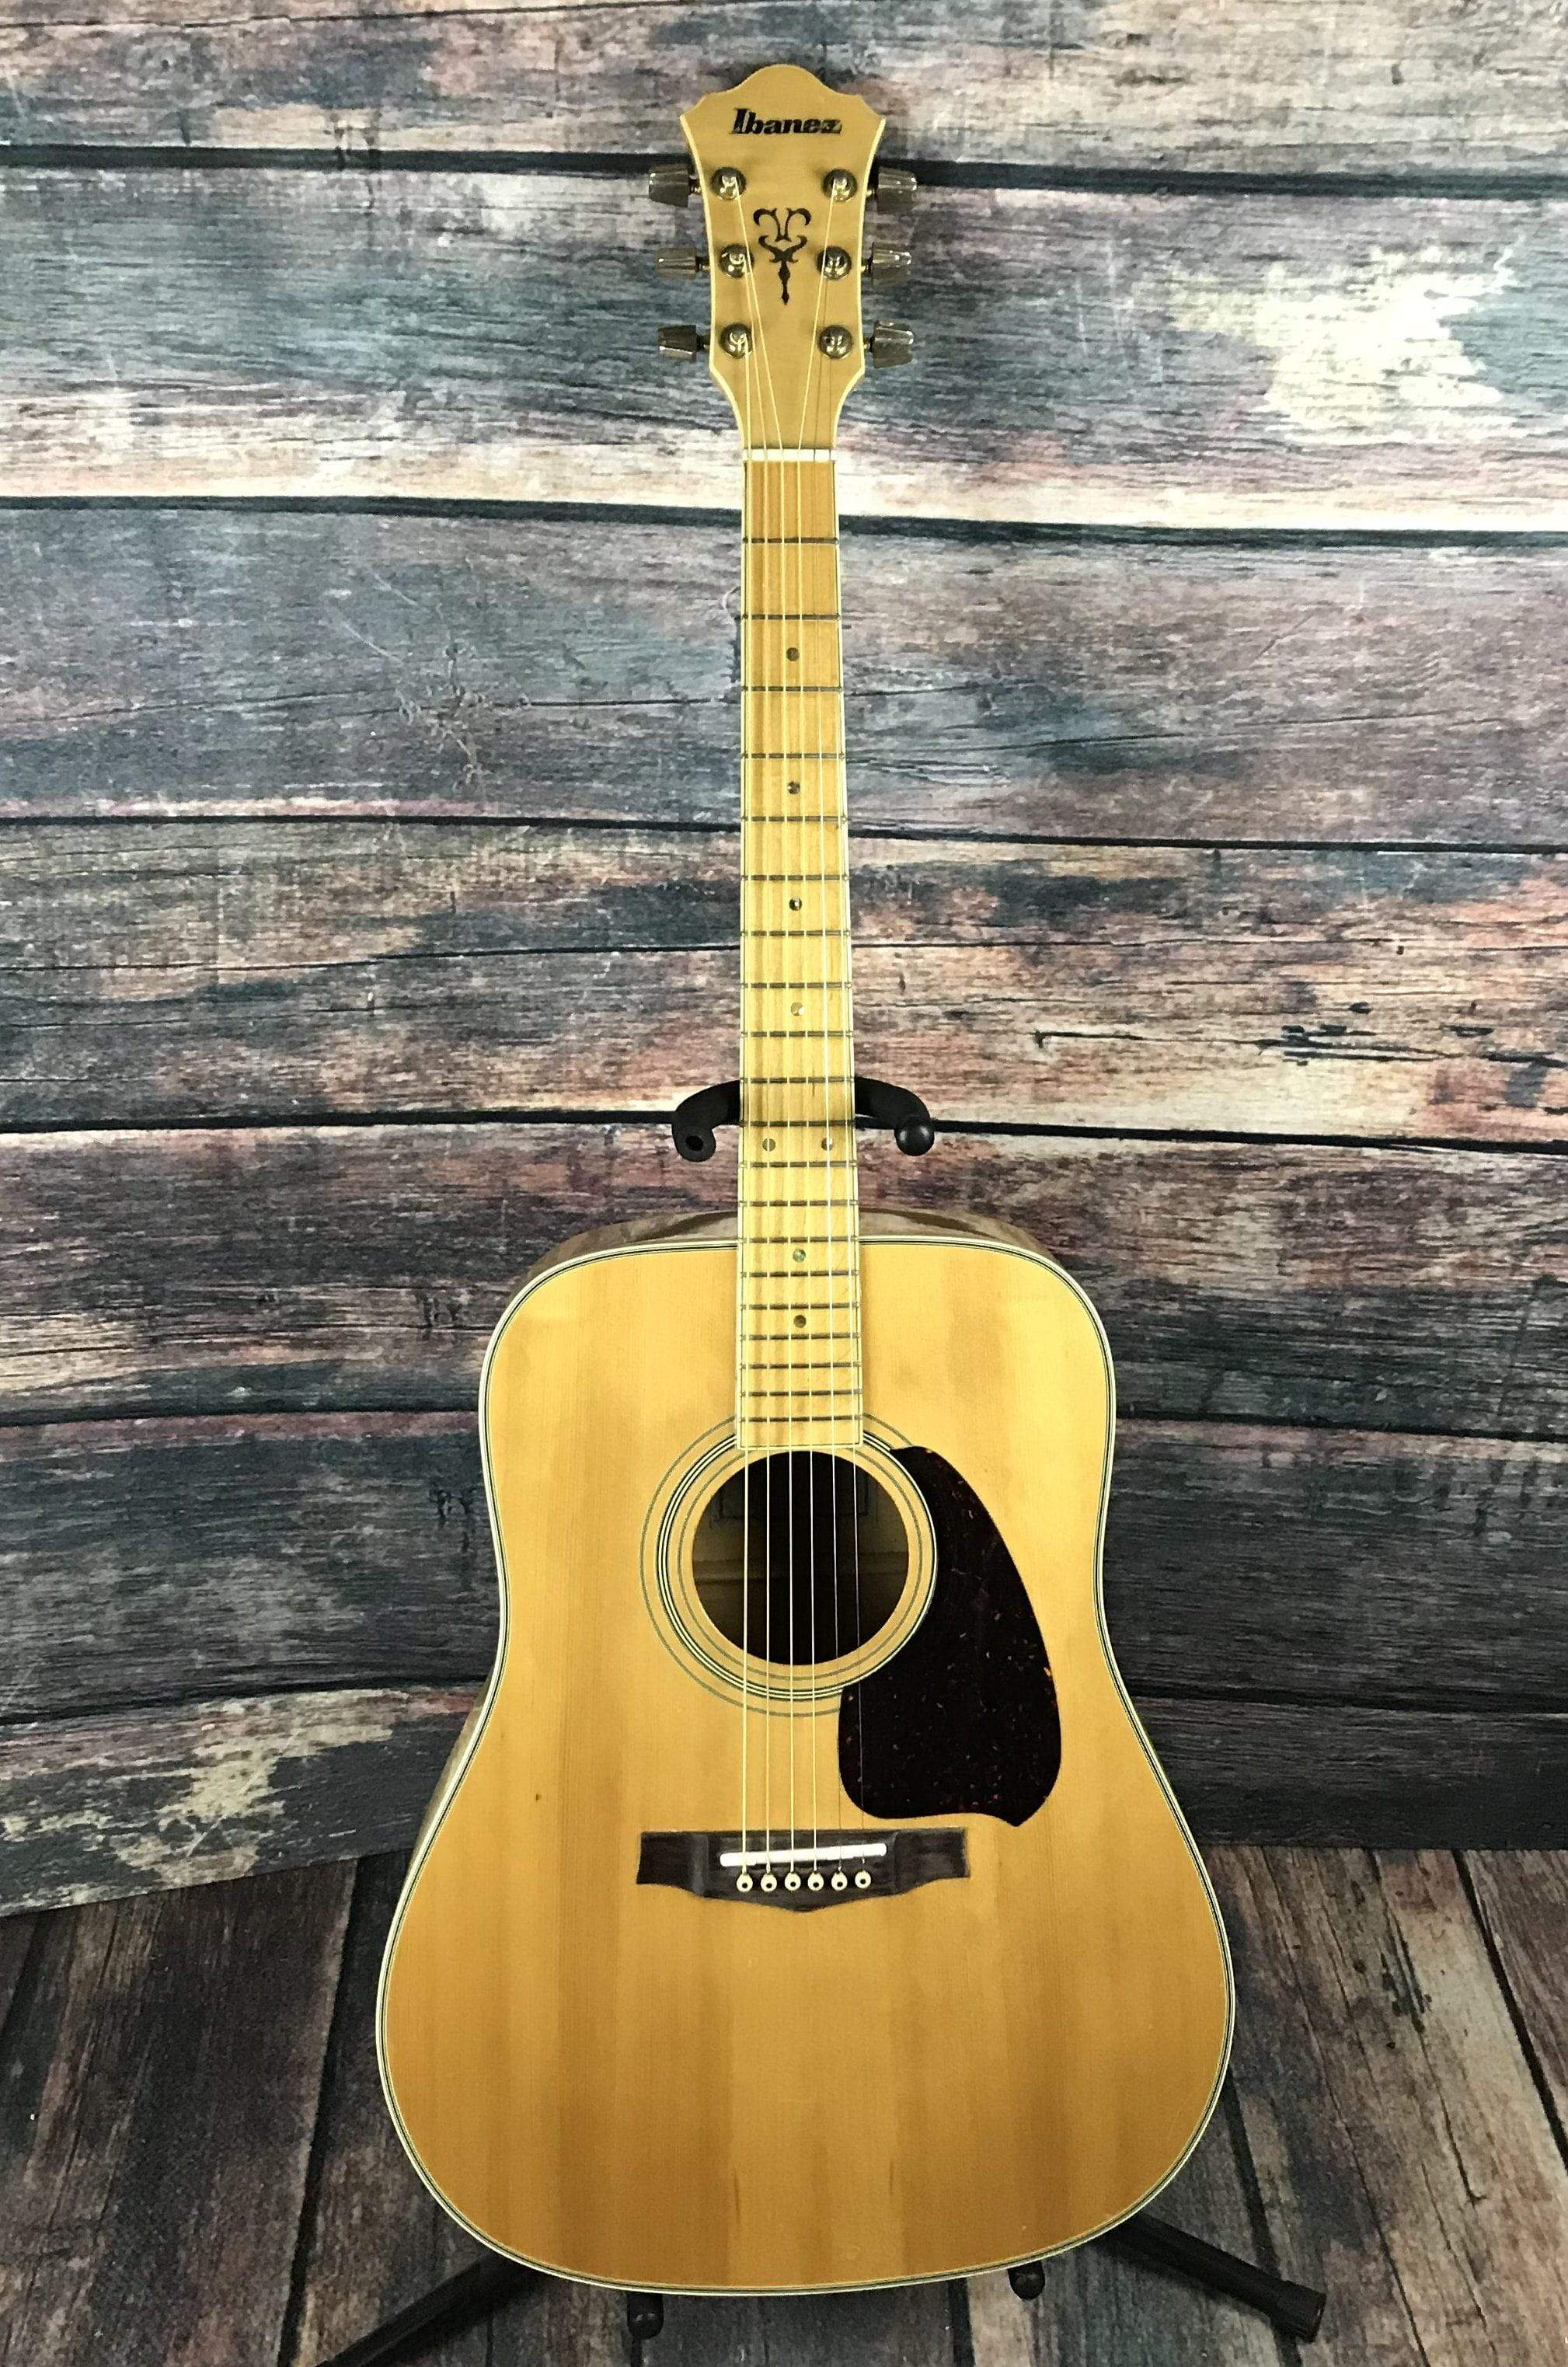 used ibanez 1980 vintage japanese made m 340 acoustic guitar with mapl. Black Bedroom Furniture Sets. Home Design Ideas